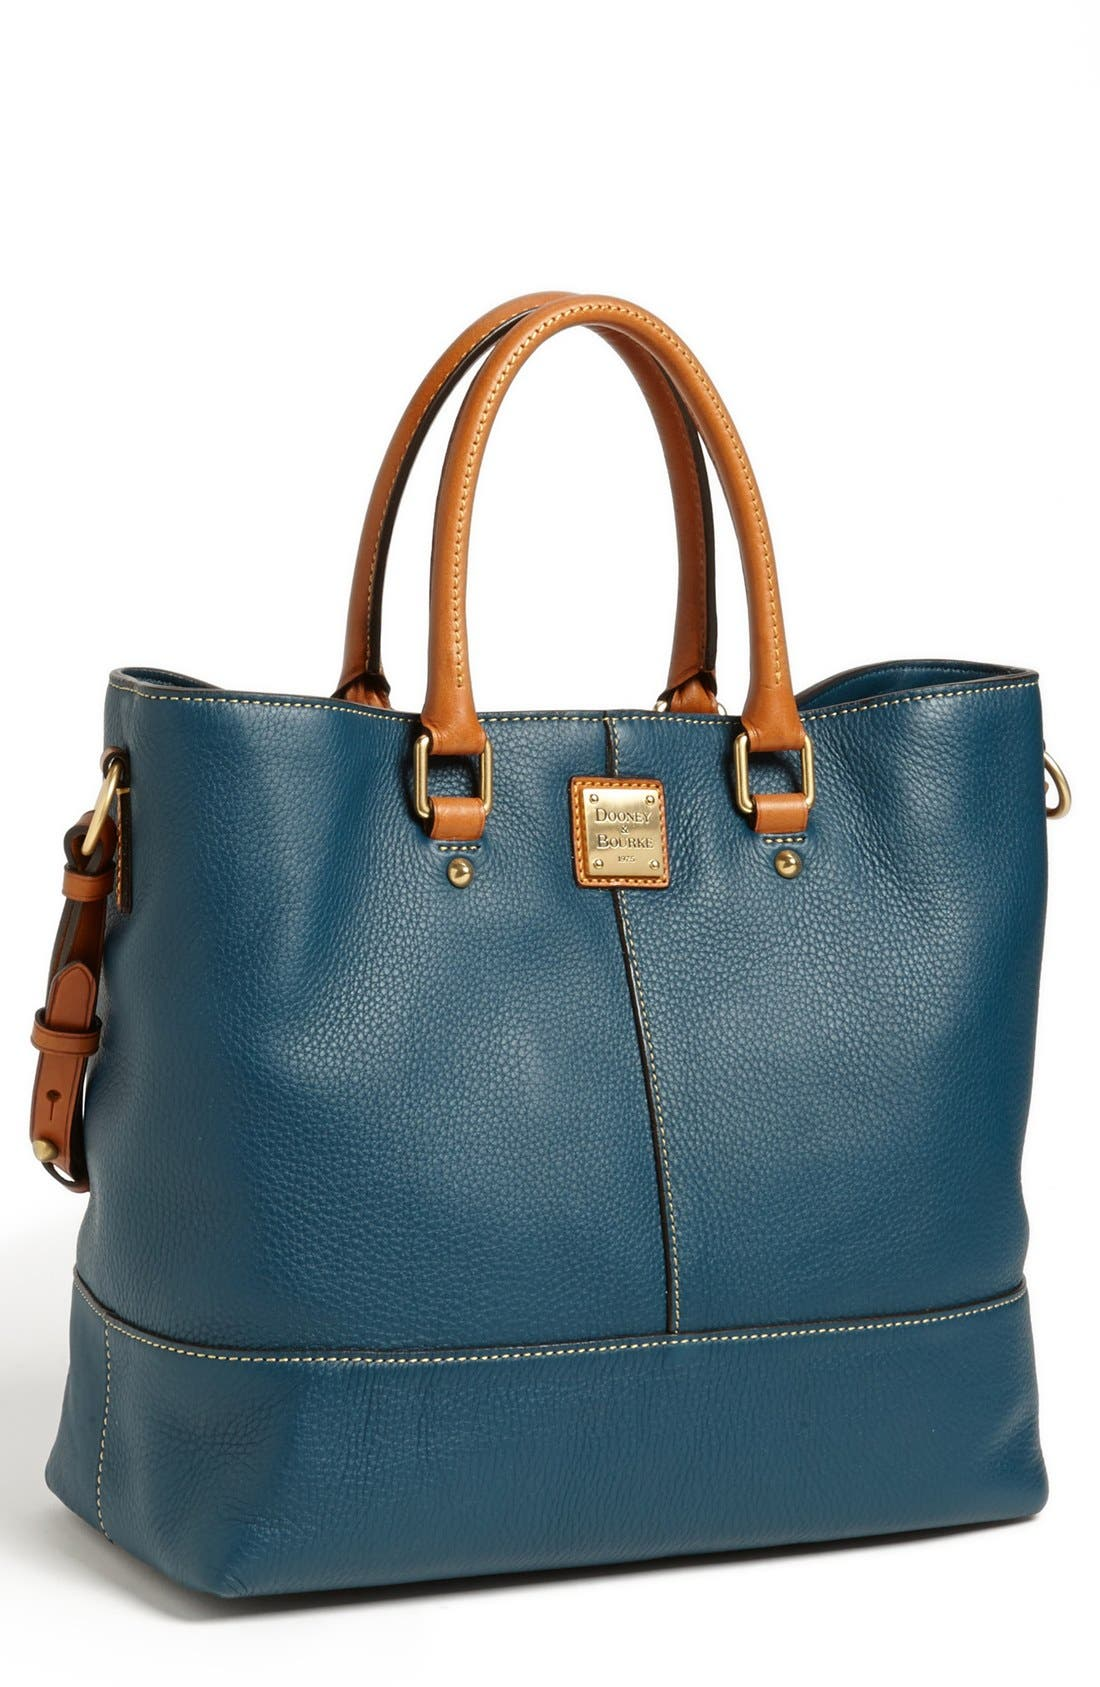 Alternate Image 1 Selected - Dooney & Bourke 'Chelsea - Dillen II Collection' Leather Tote